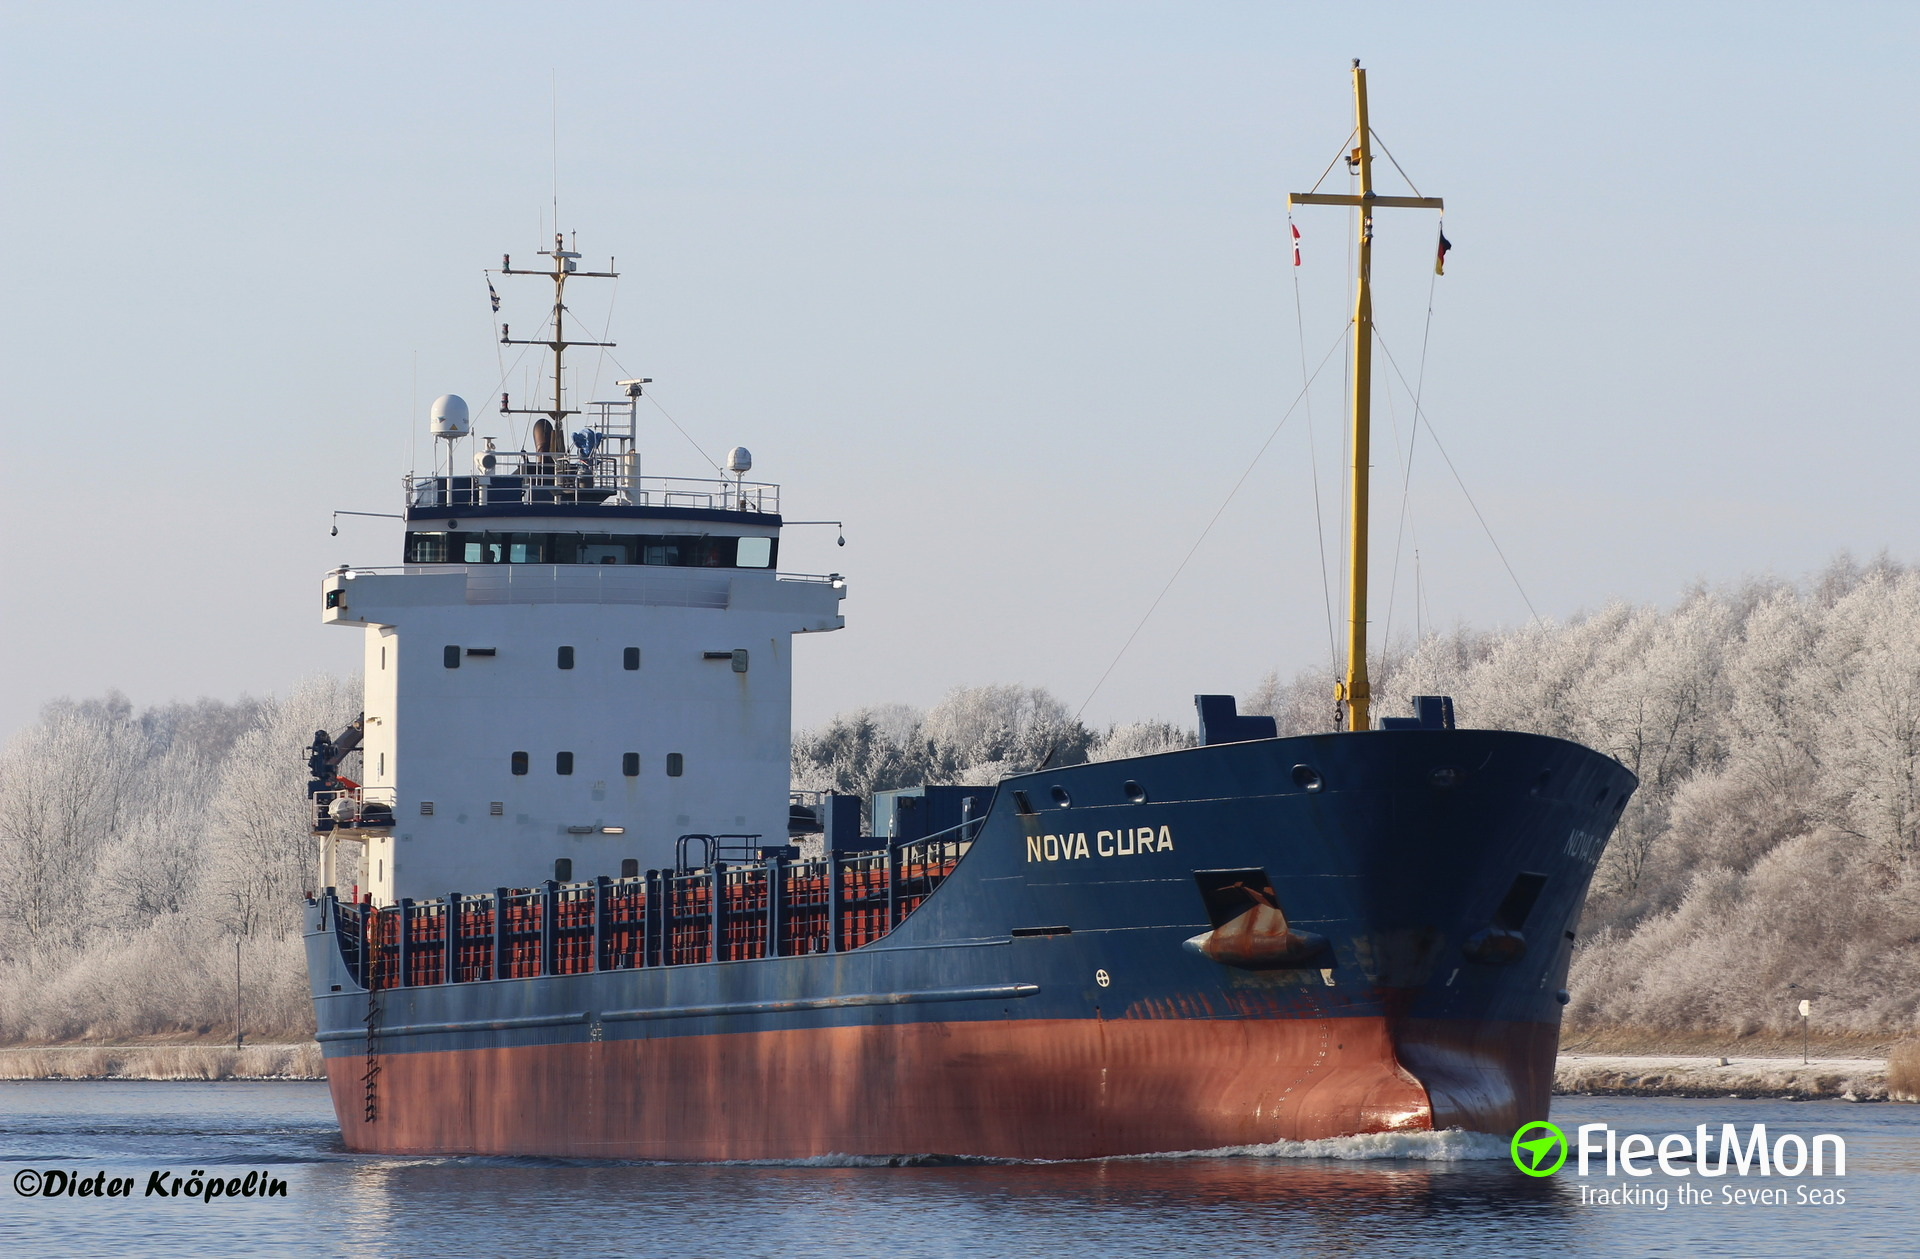 Dutch freighter NOVA CURA refloated: UPDATE